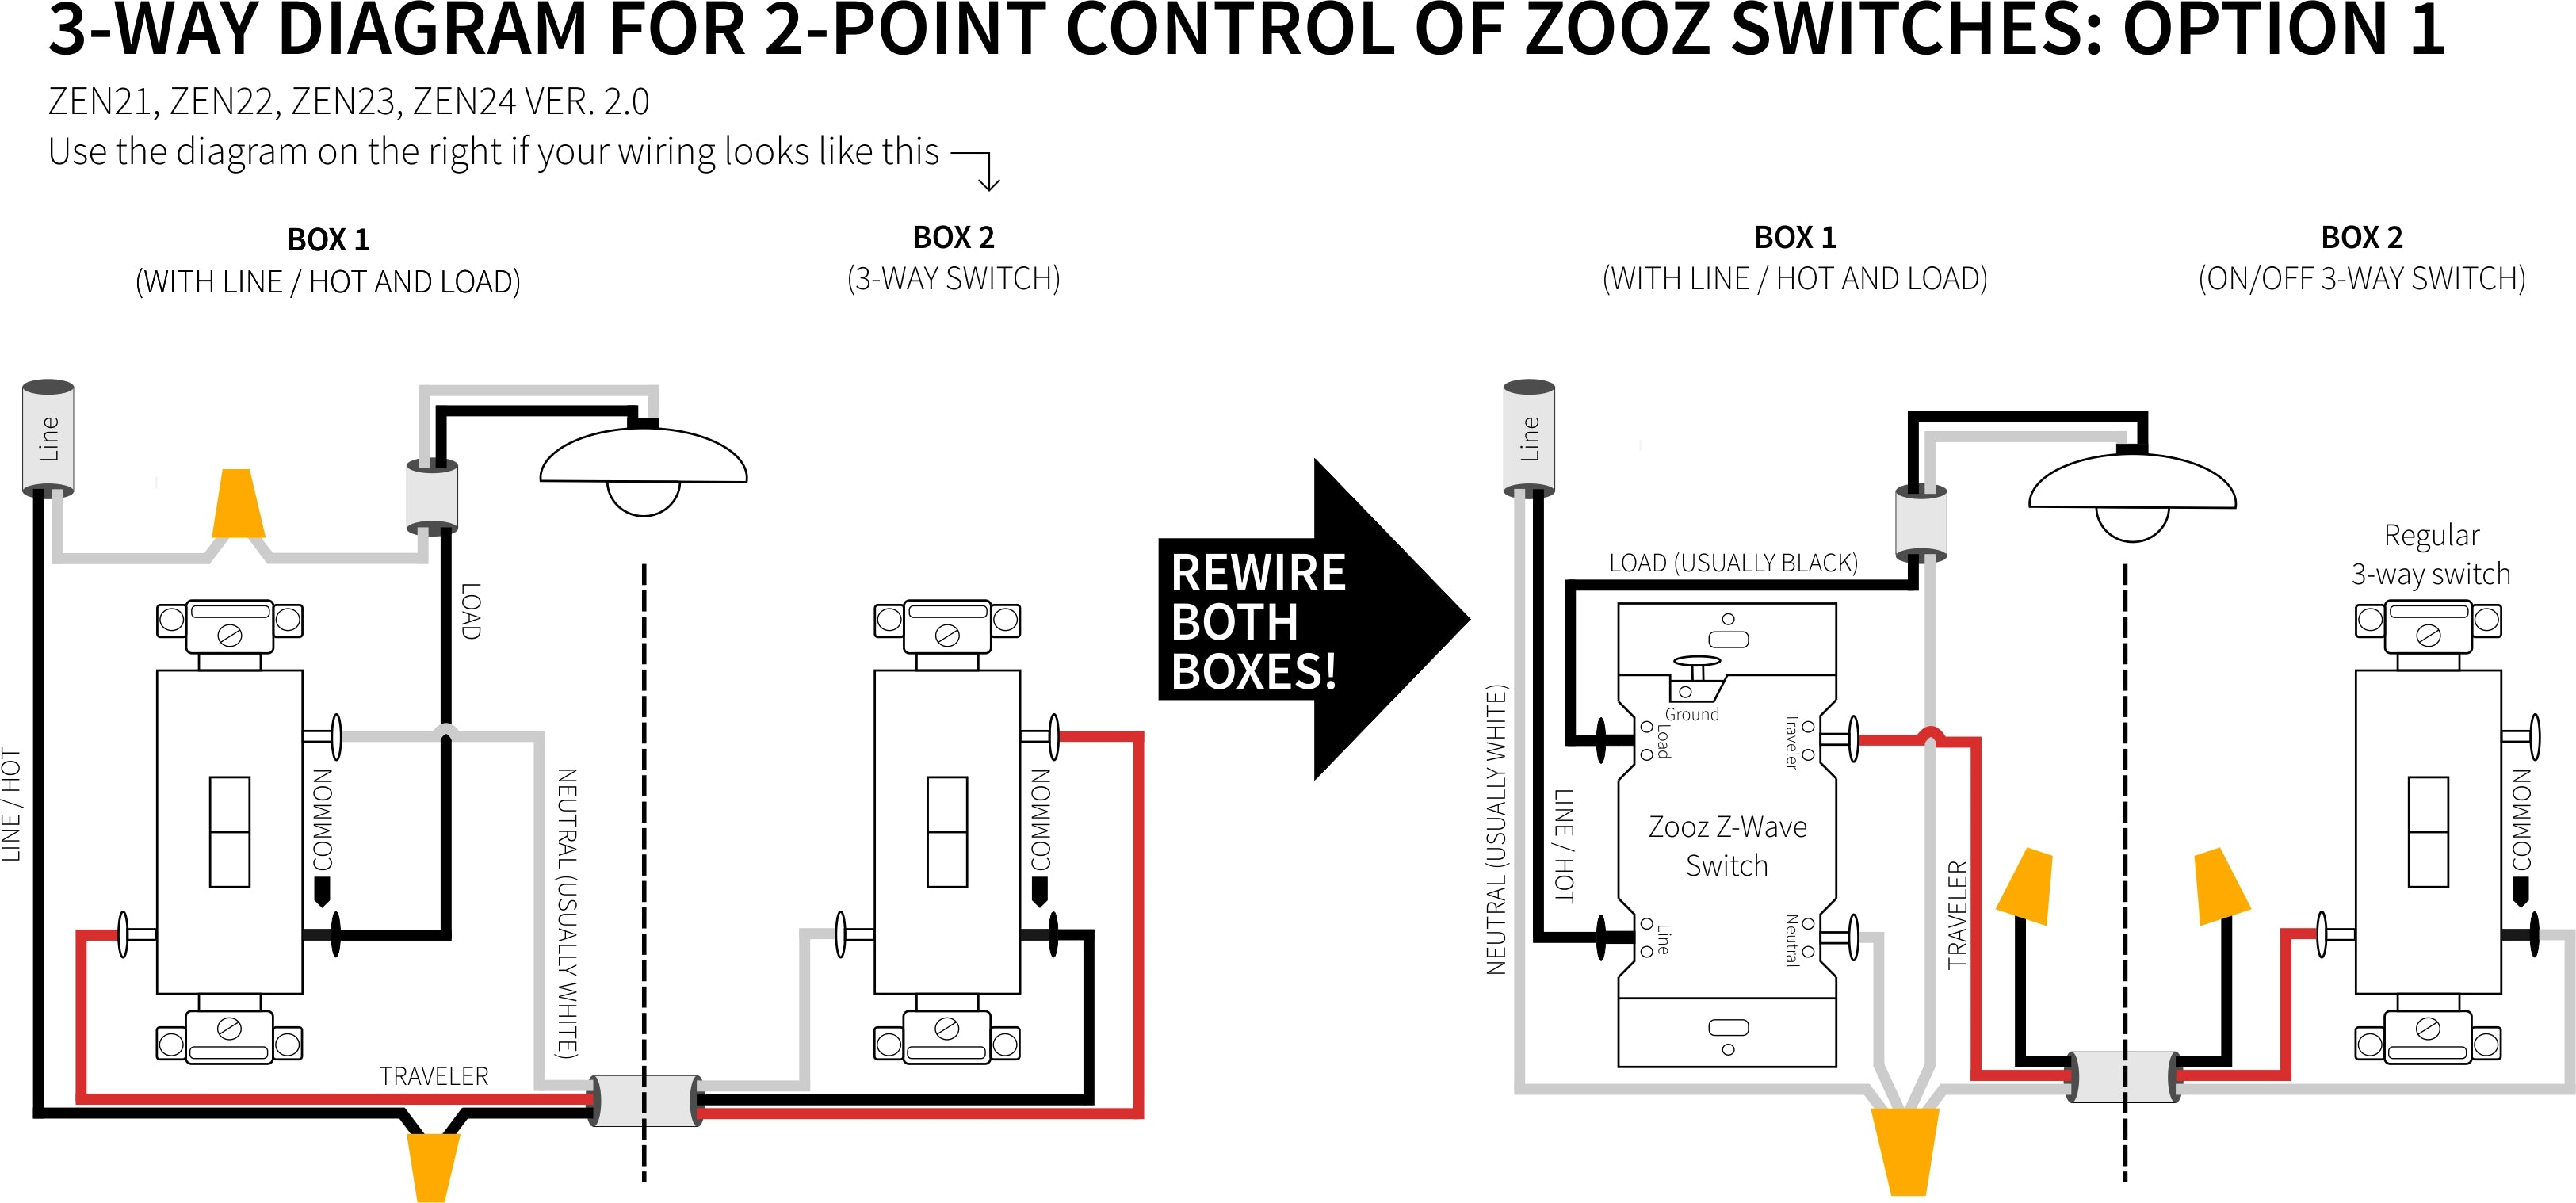 [SCHEMATICS_48YU]  Zooz Z-Wave Plus On / Off Light Switch ZEN21 VER 4.0 - The Smartest House | On Off Switch Wiring Diagram House |  | The Smartest House